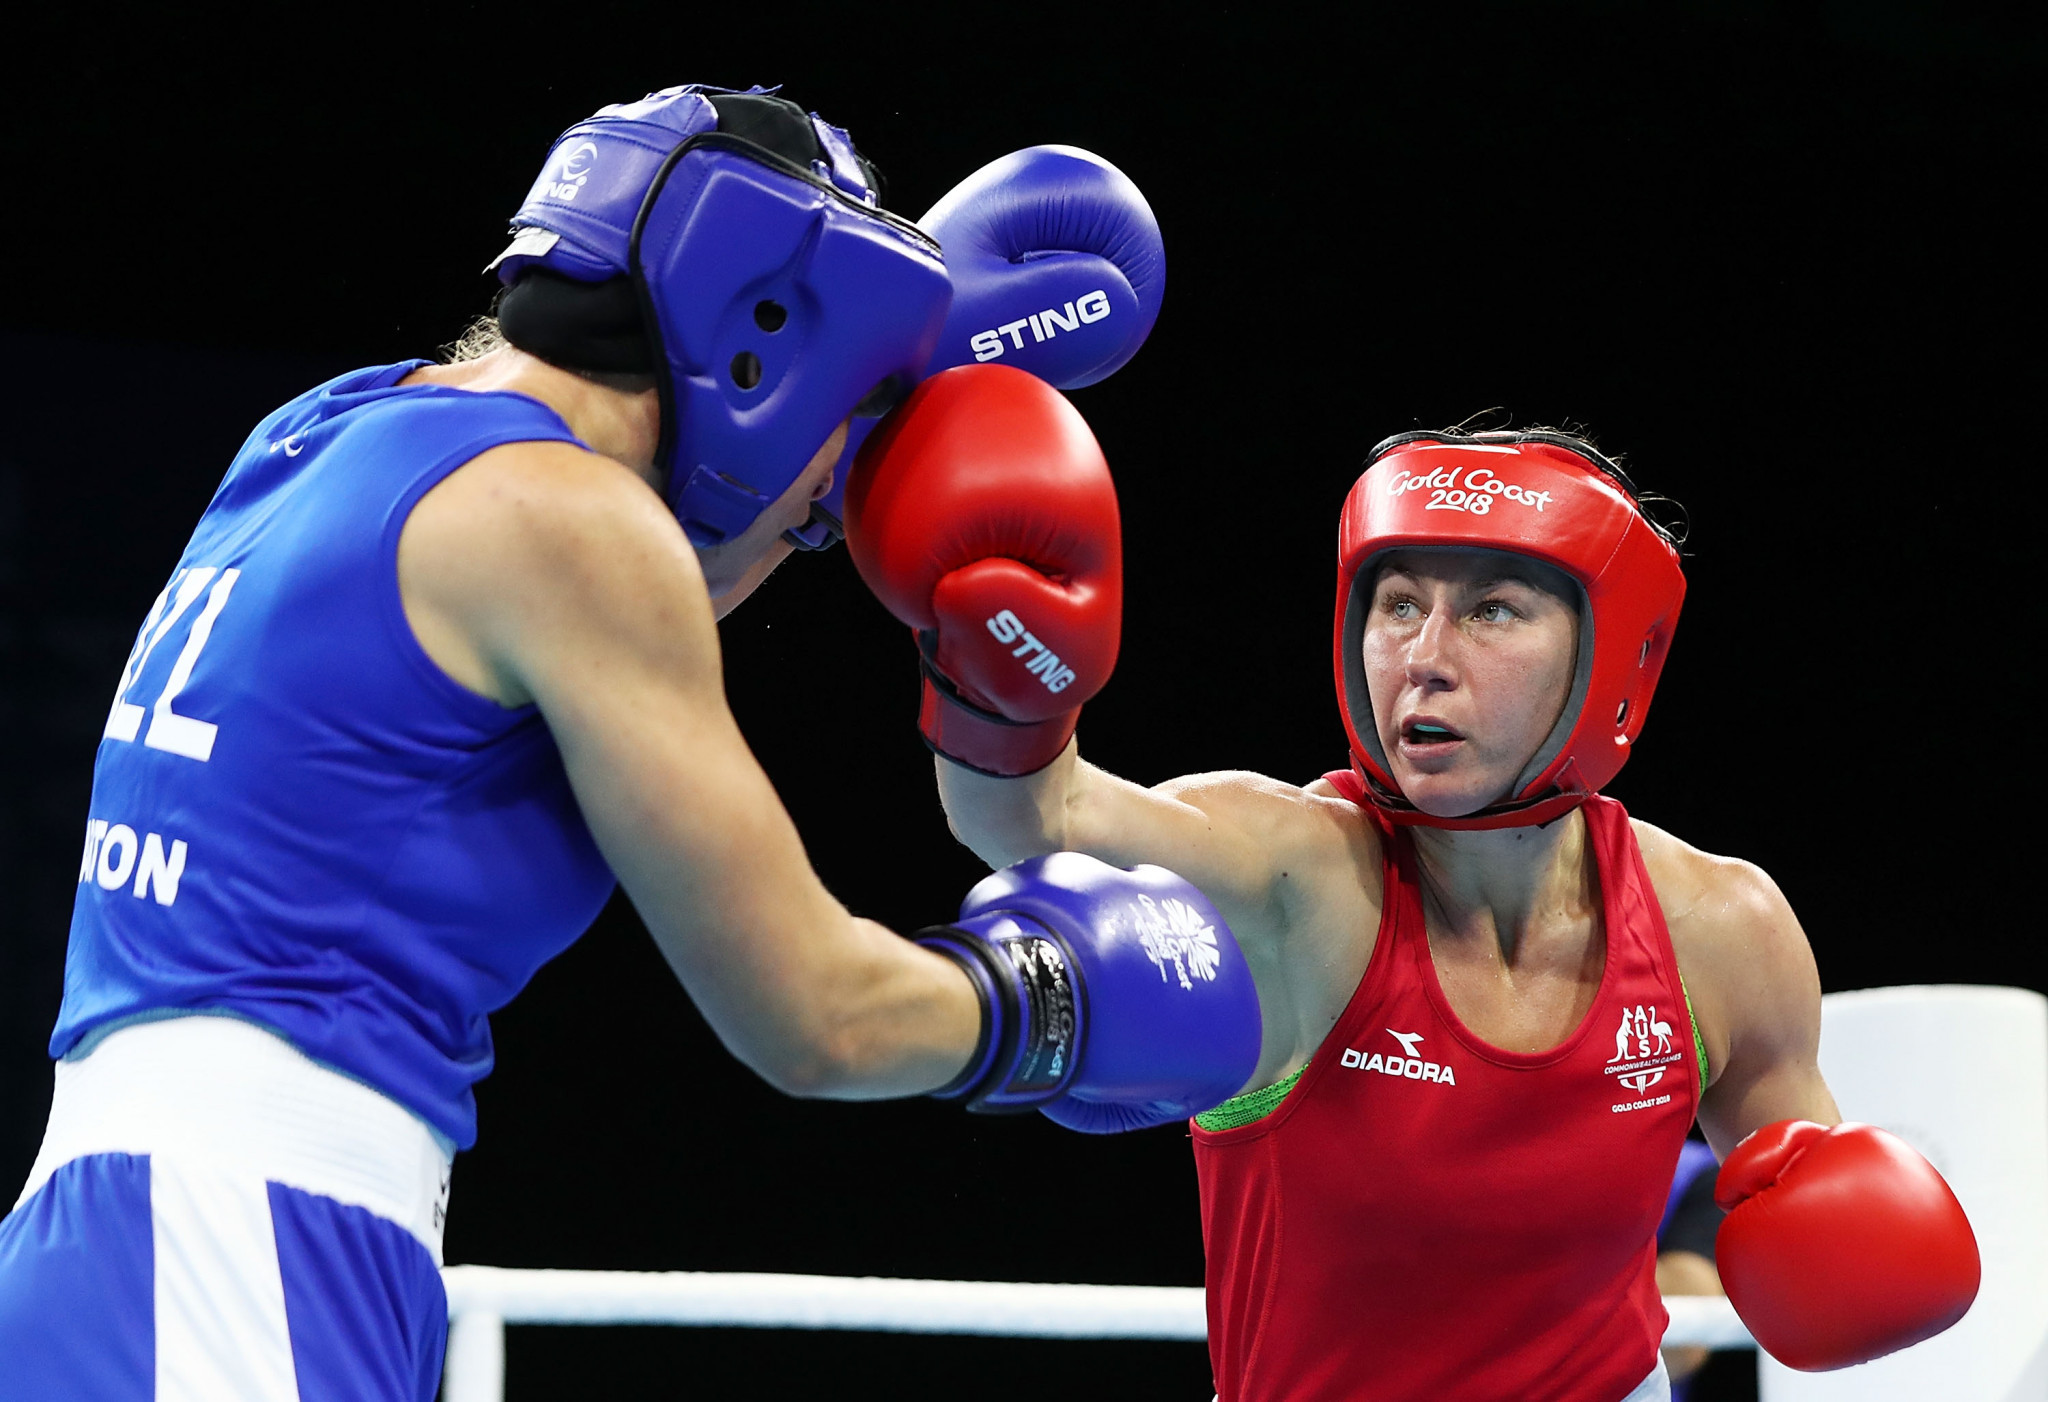 Australia's Commonwealth Games champion Anja Stridsman was beaten by Thailand's Sudaporn Seesondee ©Getty Images